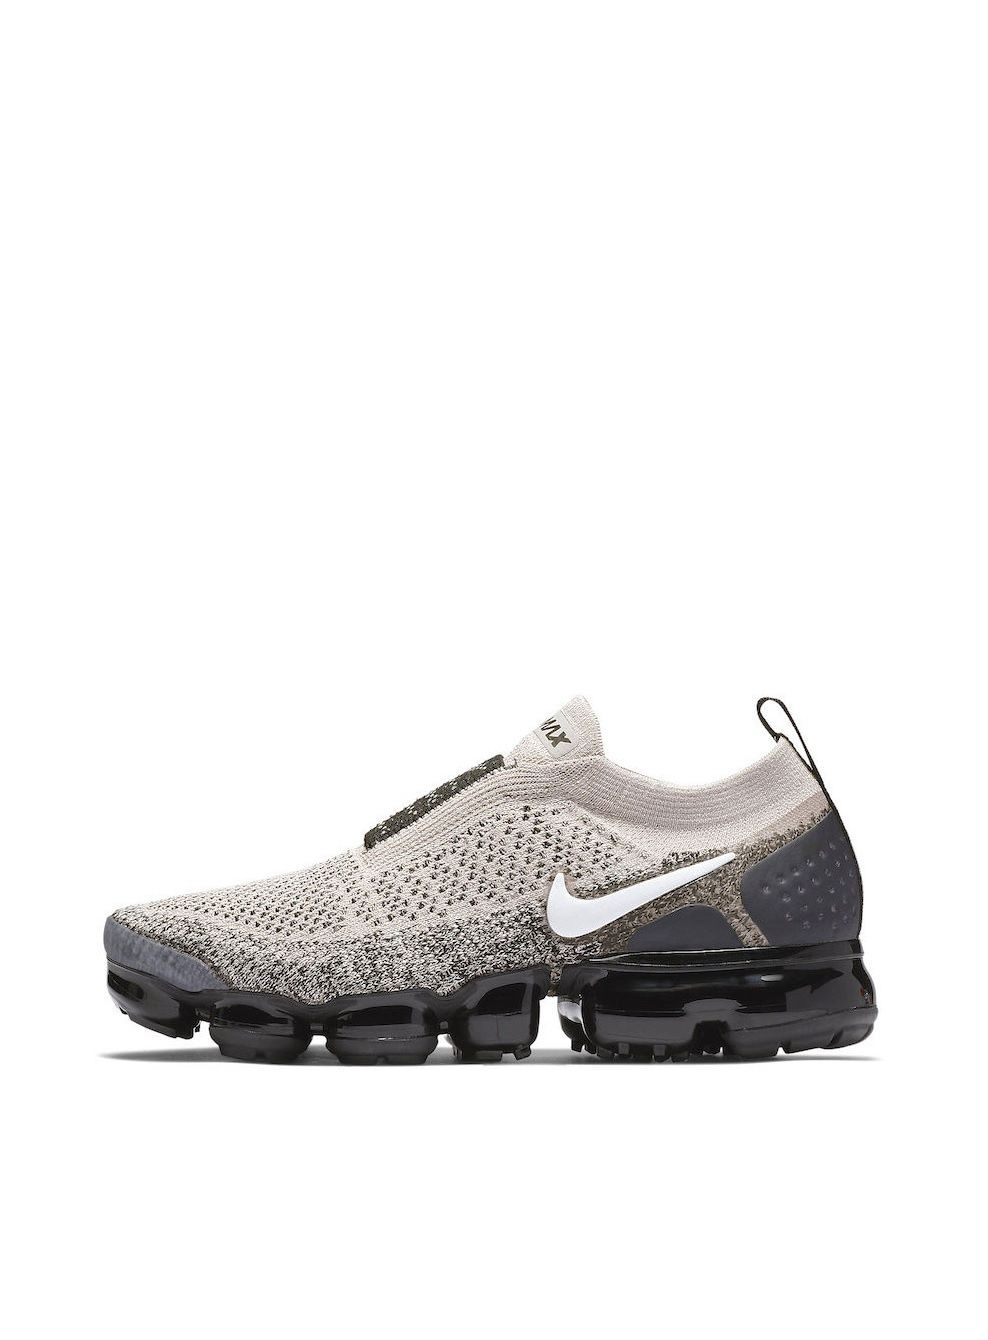 cfda62183a36d Discover ideas about Nike Kd Shoes. Nike Air VaporMax Vast Grey Metallic  Gold ...